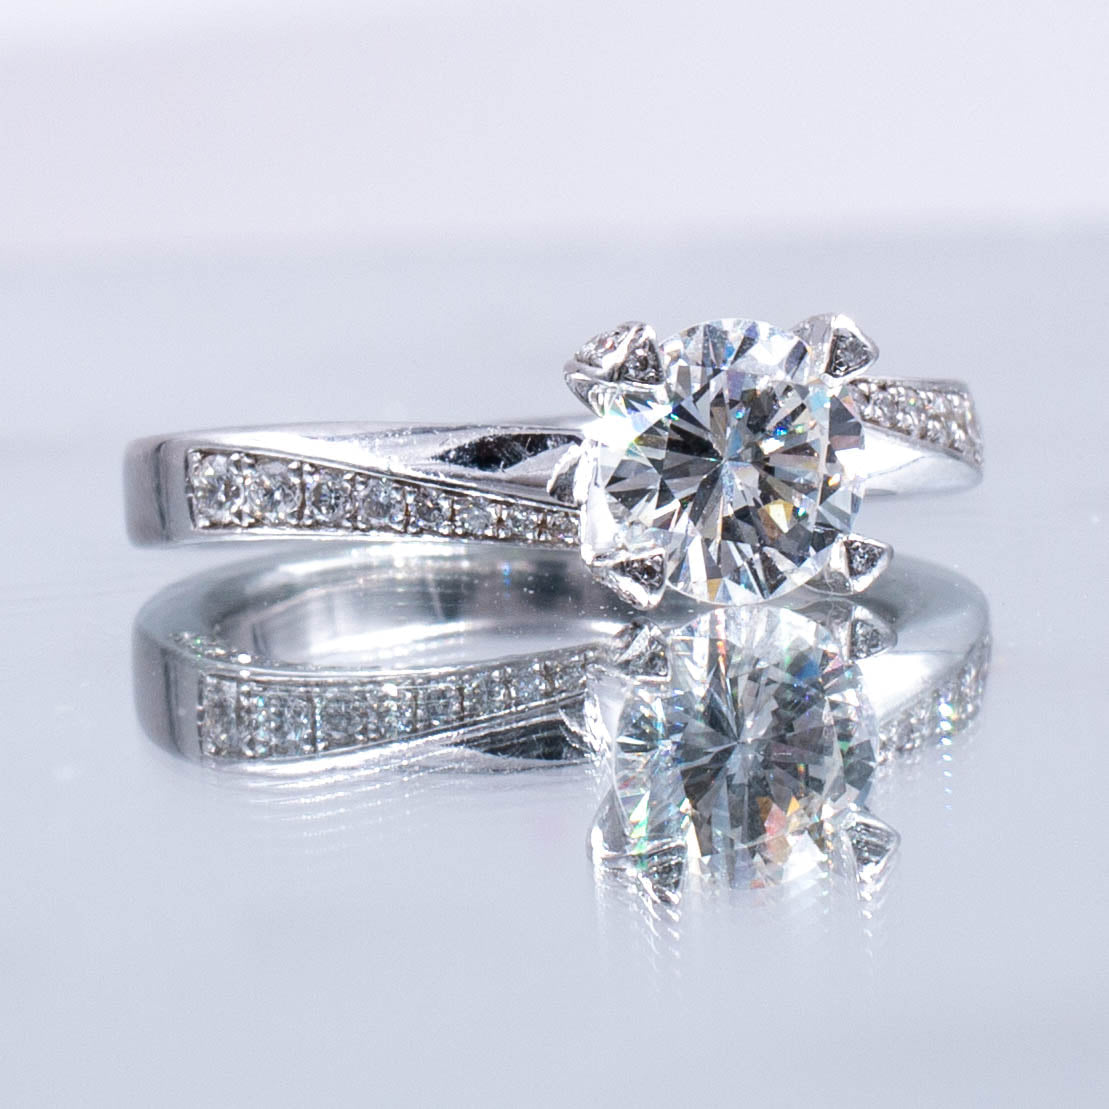 1 Carat GIA H Color VS2 Clarity Diamond Engagement Ring In Platinum Artisan Hand Crafted